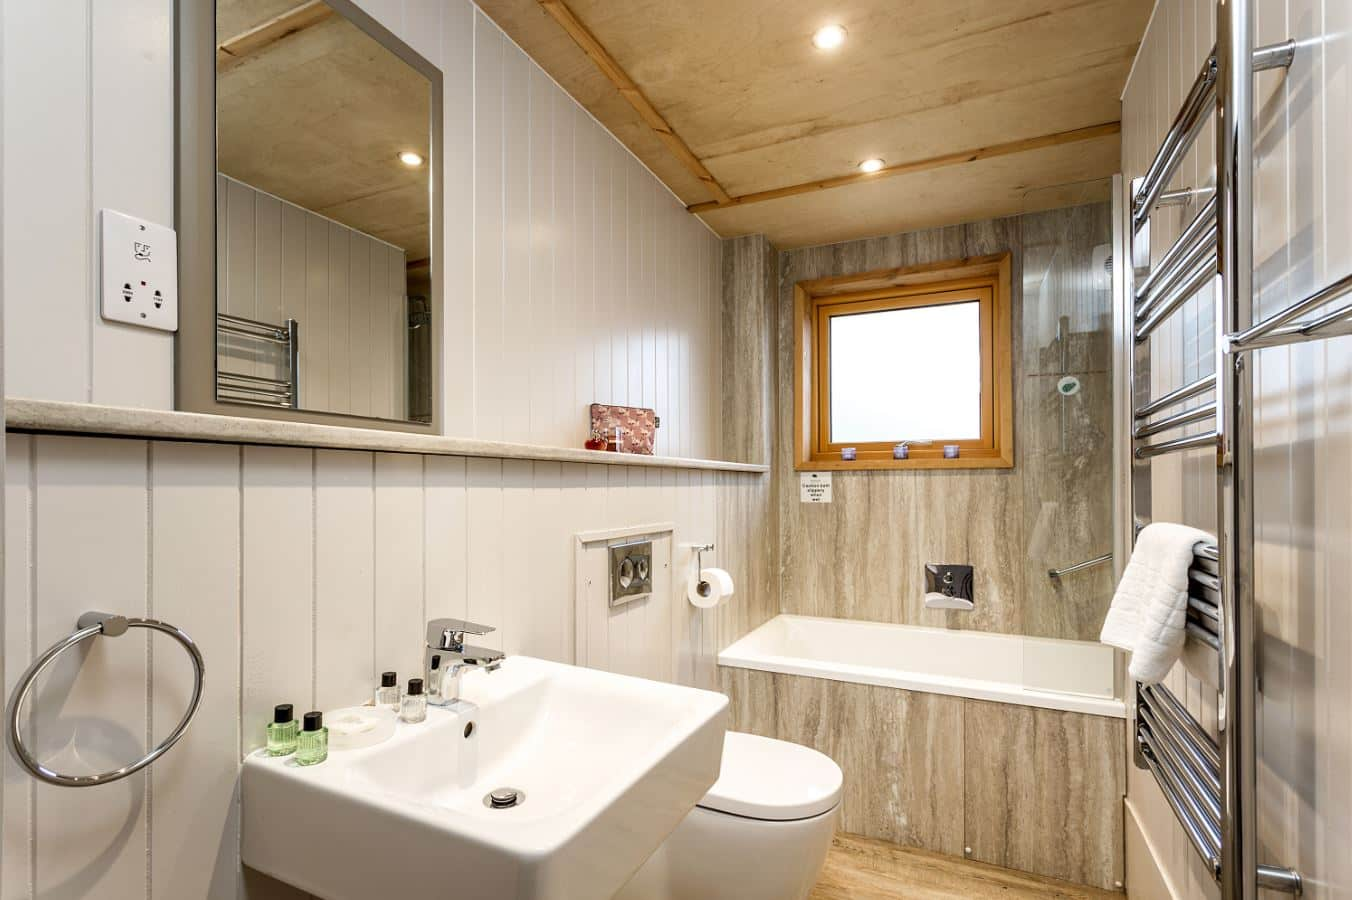 Executive Lodge Bathroom